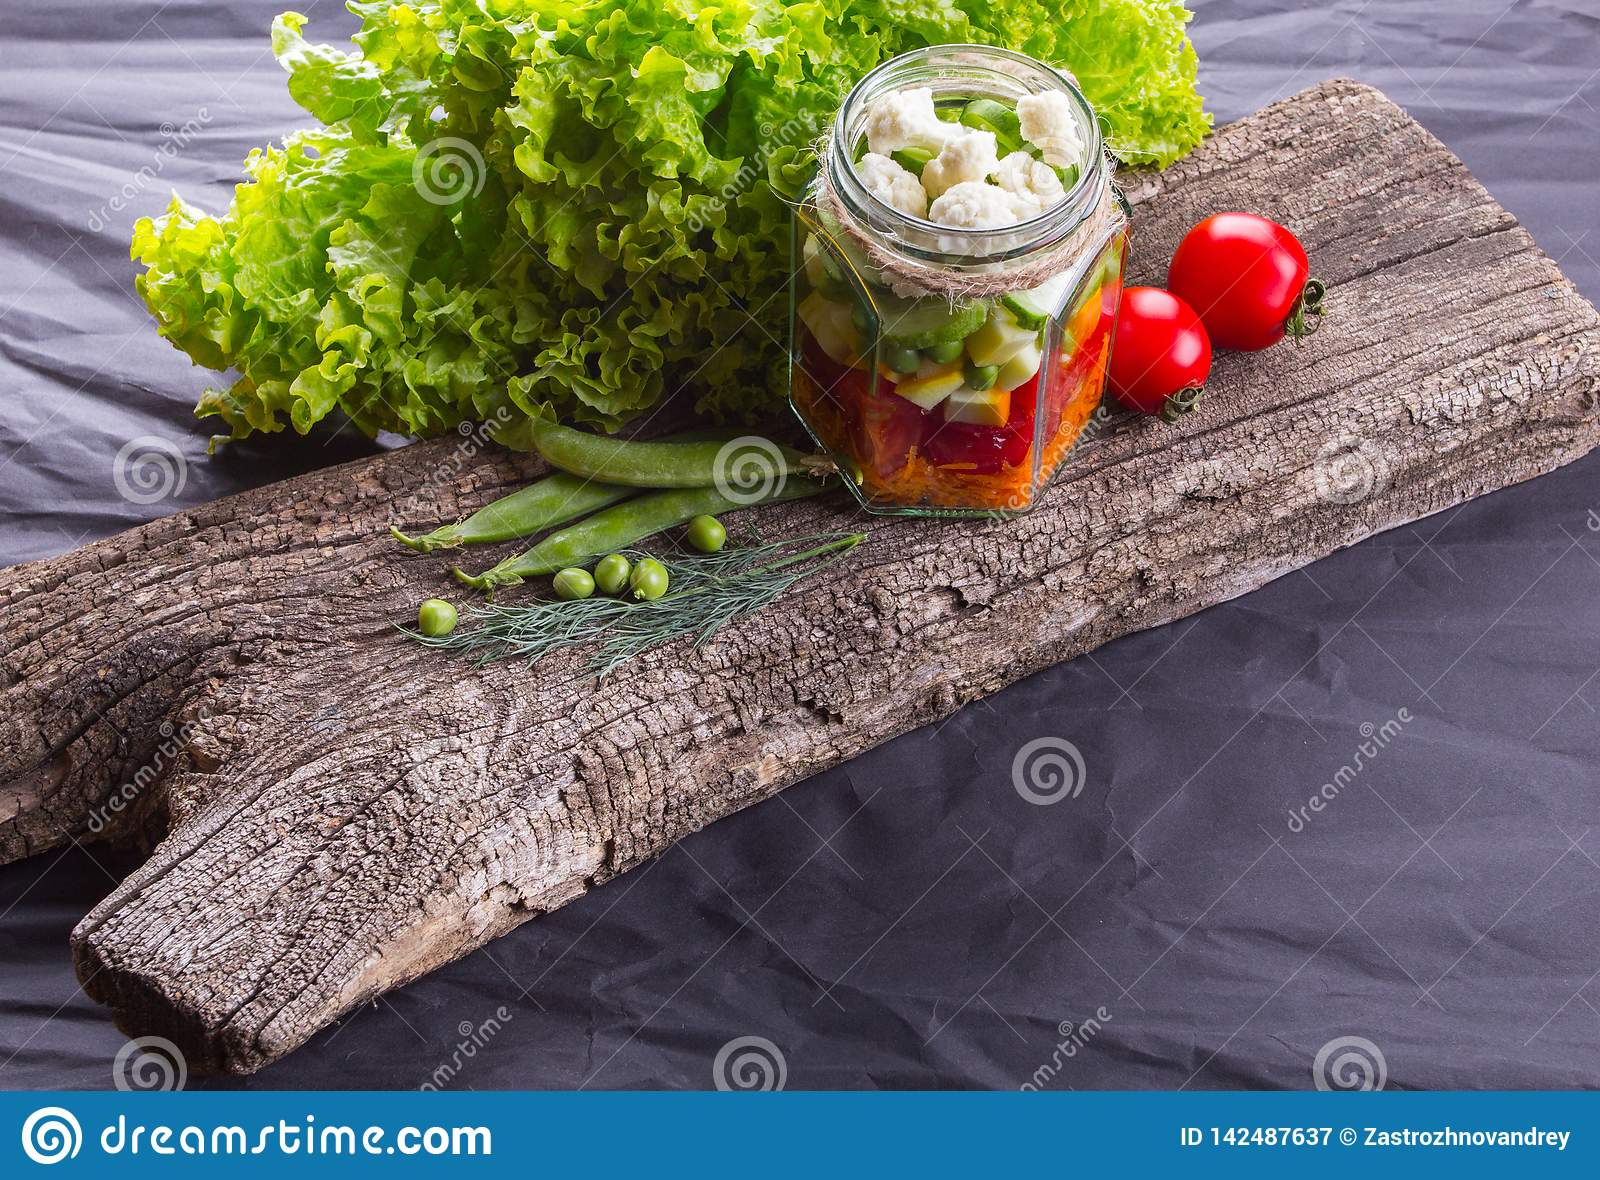 Fresh vegetable salad with herbs on a wooden board, black textured background. With space for text. Healthy food